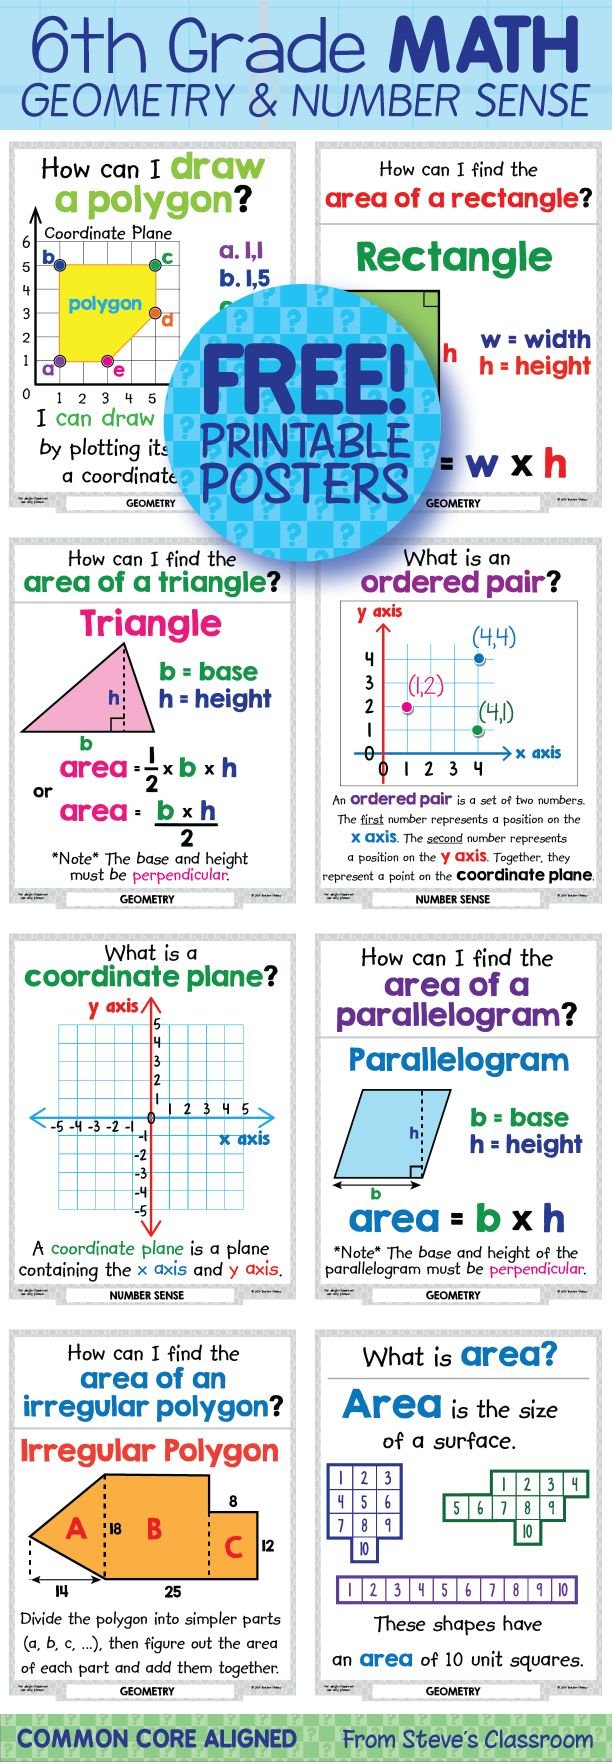 1000+ Images About 6th Grade Math On Pinterest  Math Websites, Box Plot And Surface Area